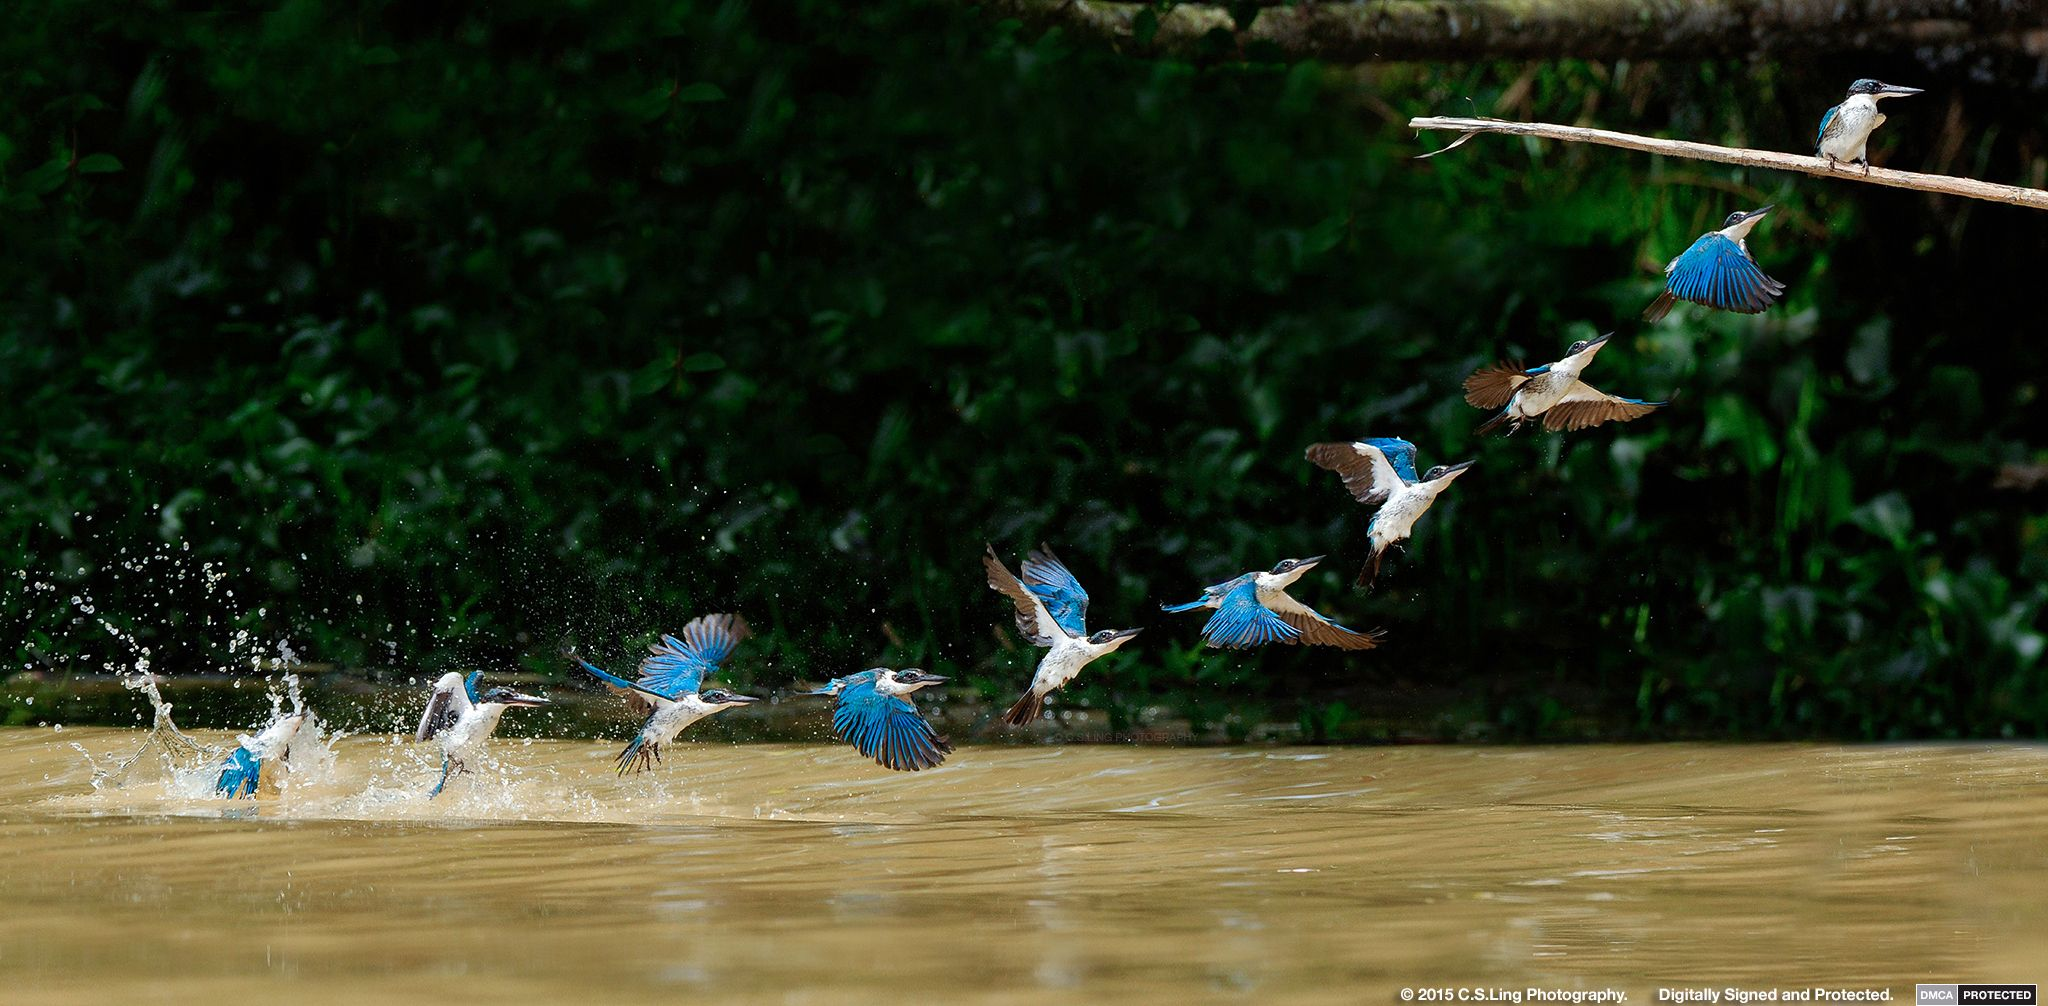 Kingfisher flight sequence shot by C.S.Ling Photography